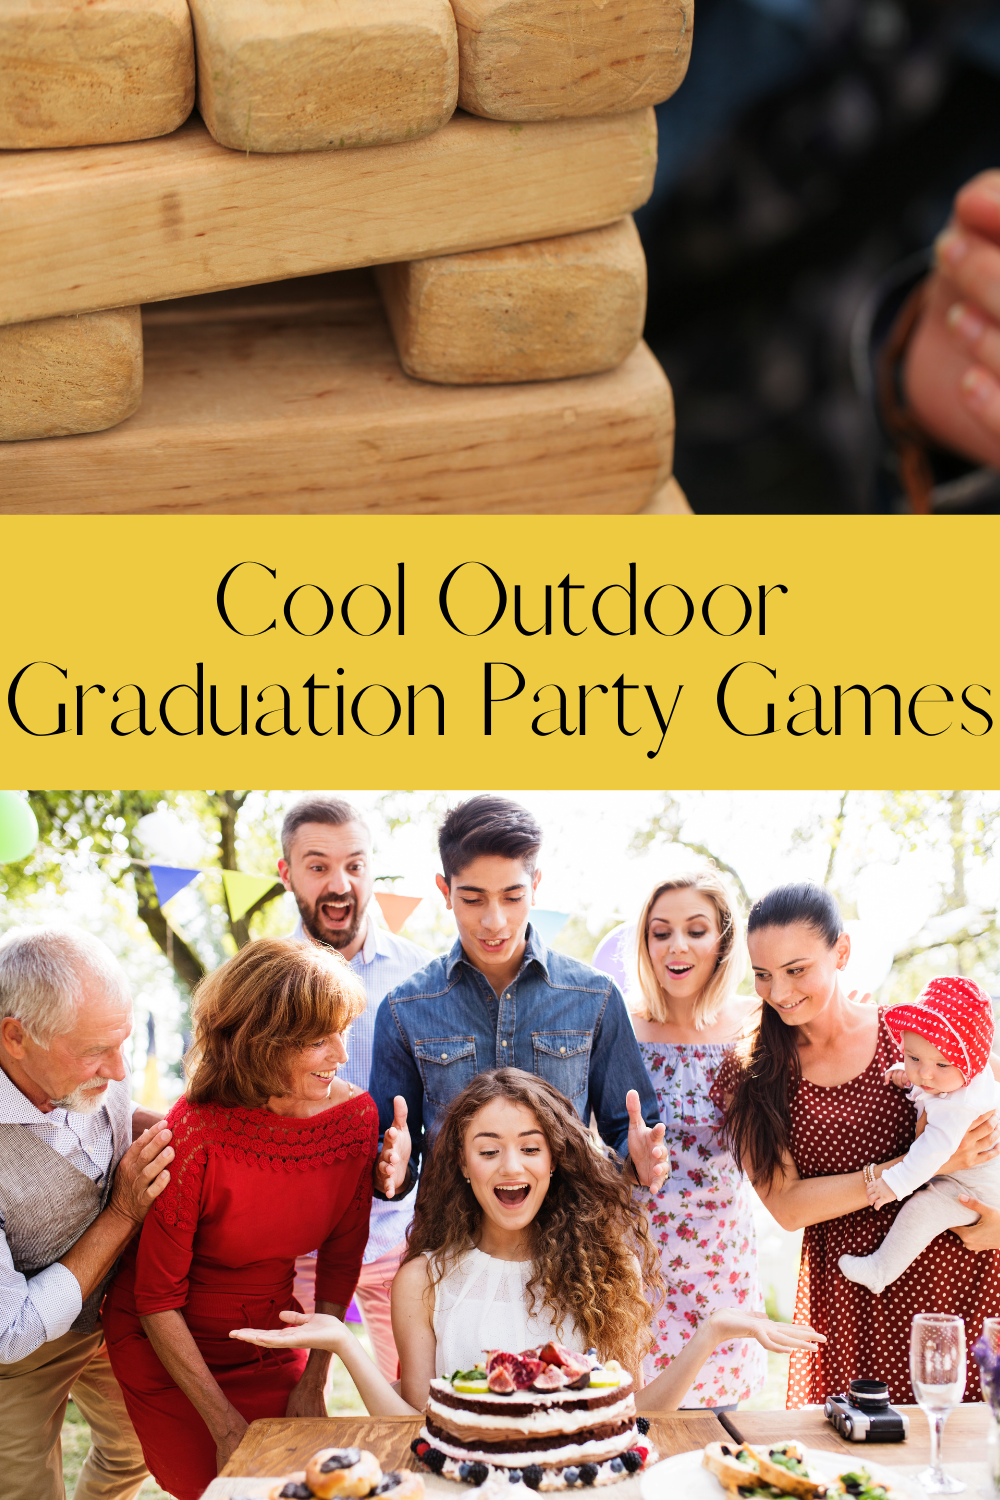 Cool Outdoor Graduation Party Games